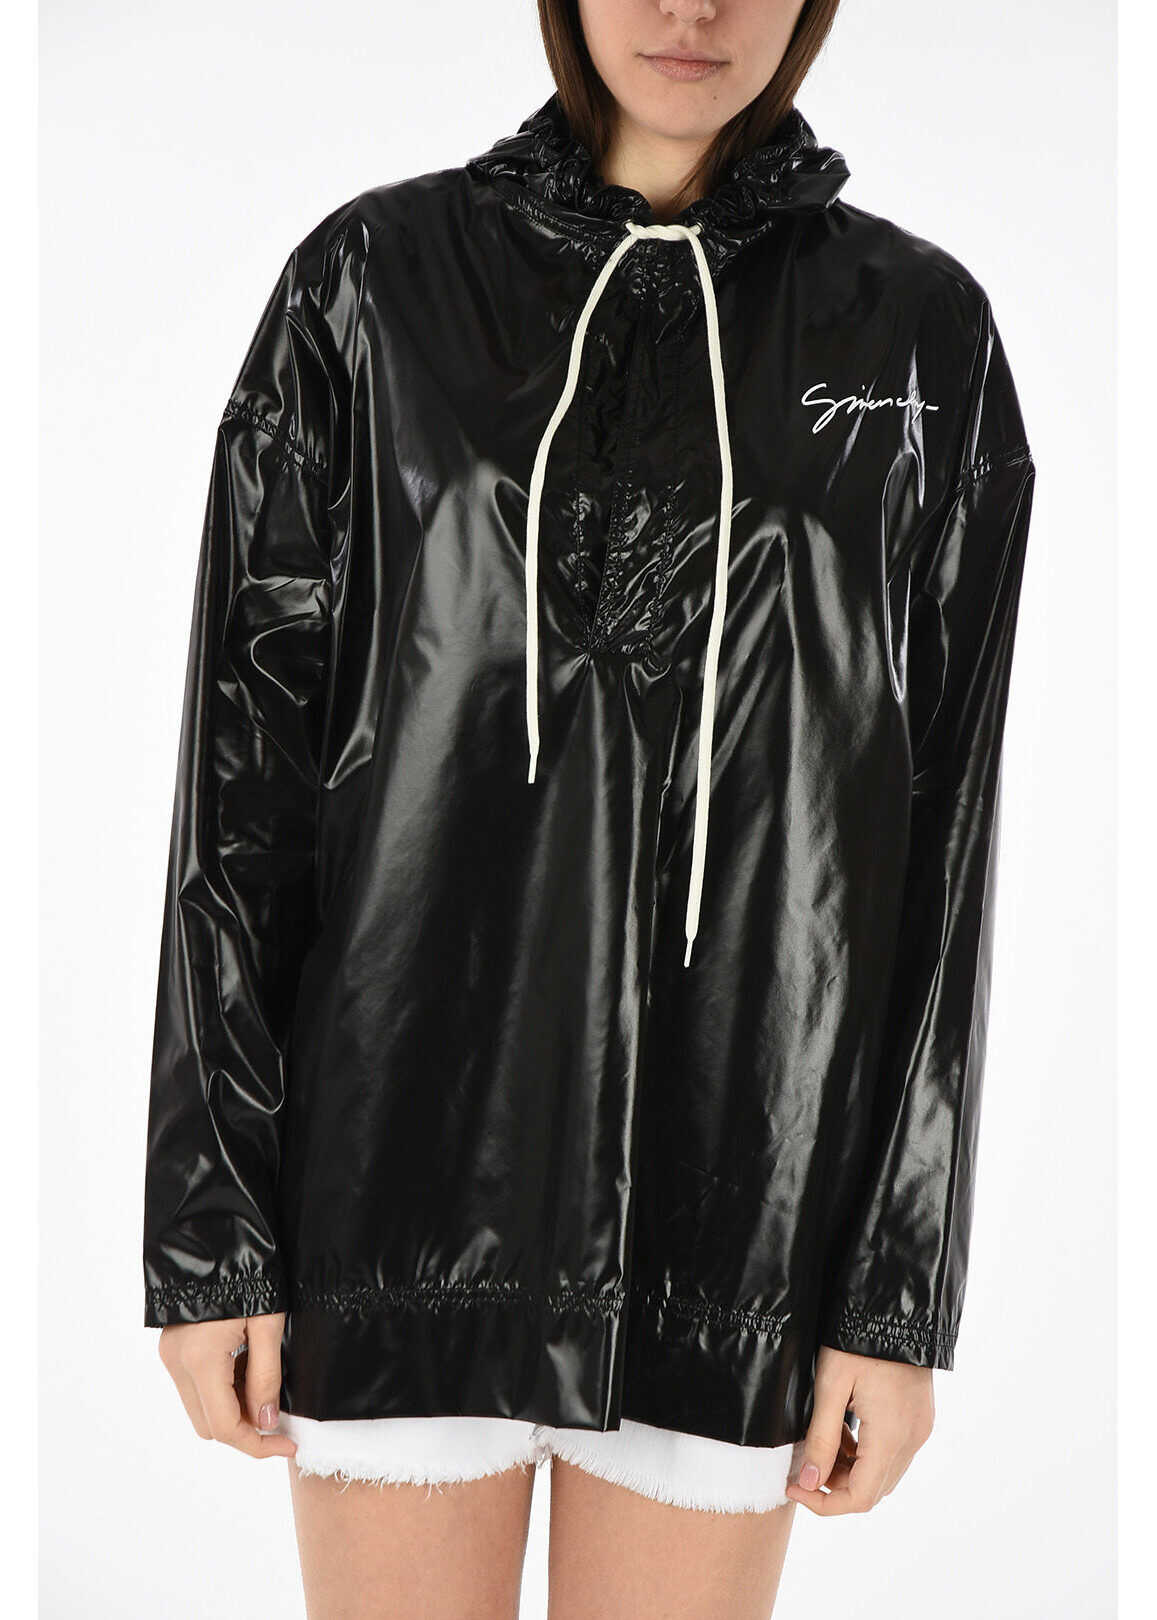 Givenchy hooded raincoat outerwear BLACK